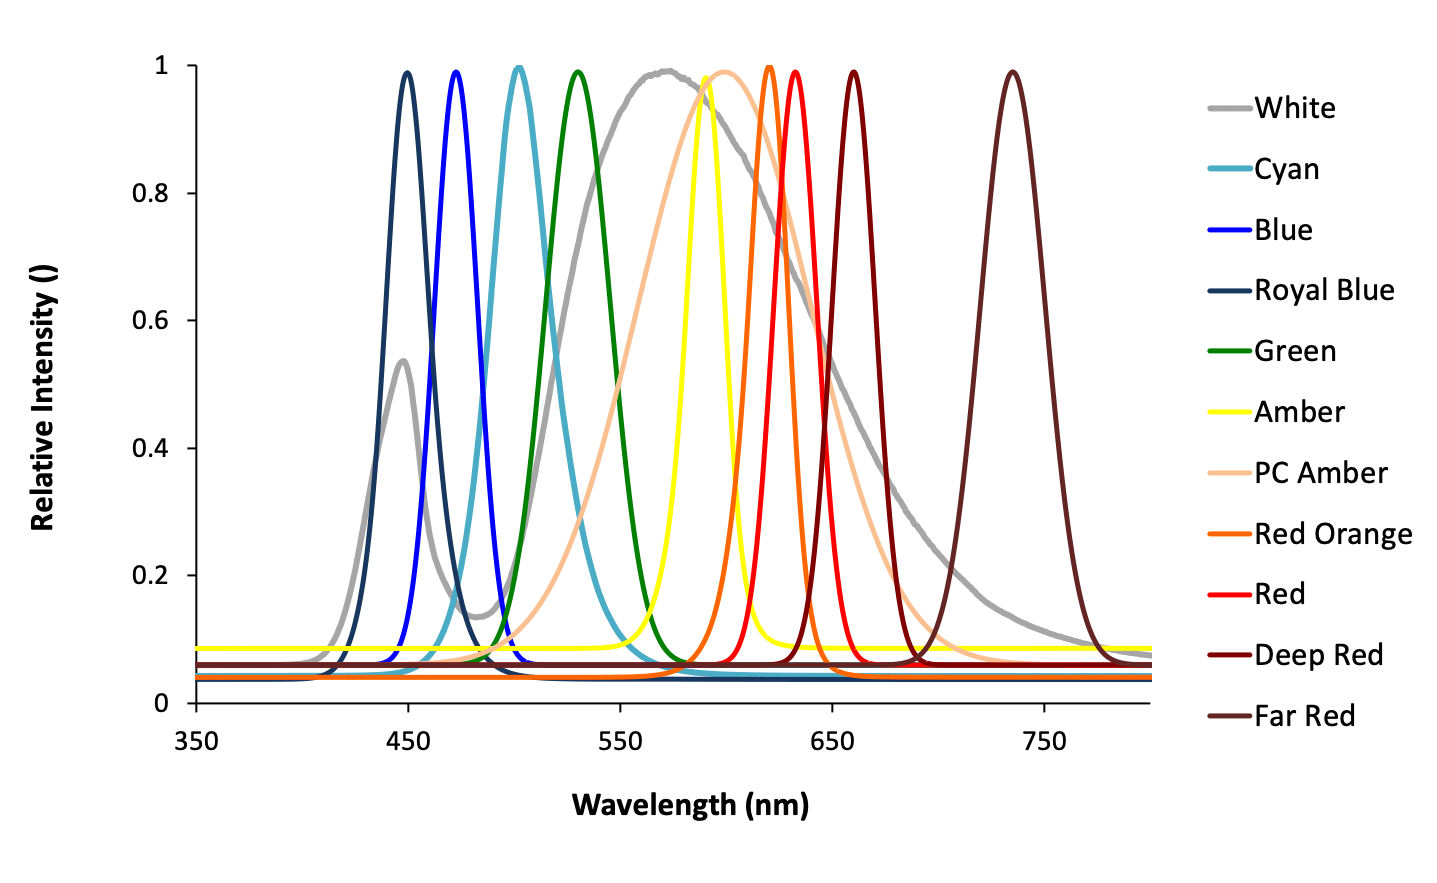 Spectral Intensity of Selected Colors of the LeRoy LED